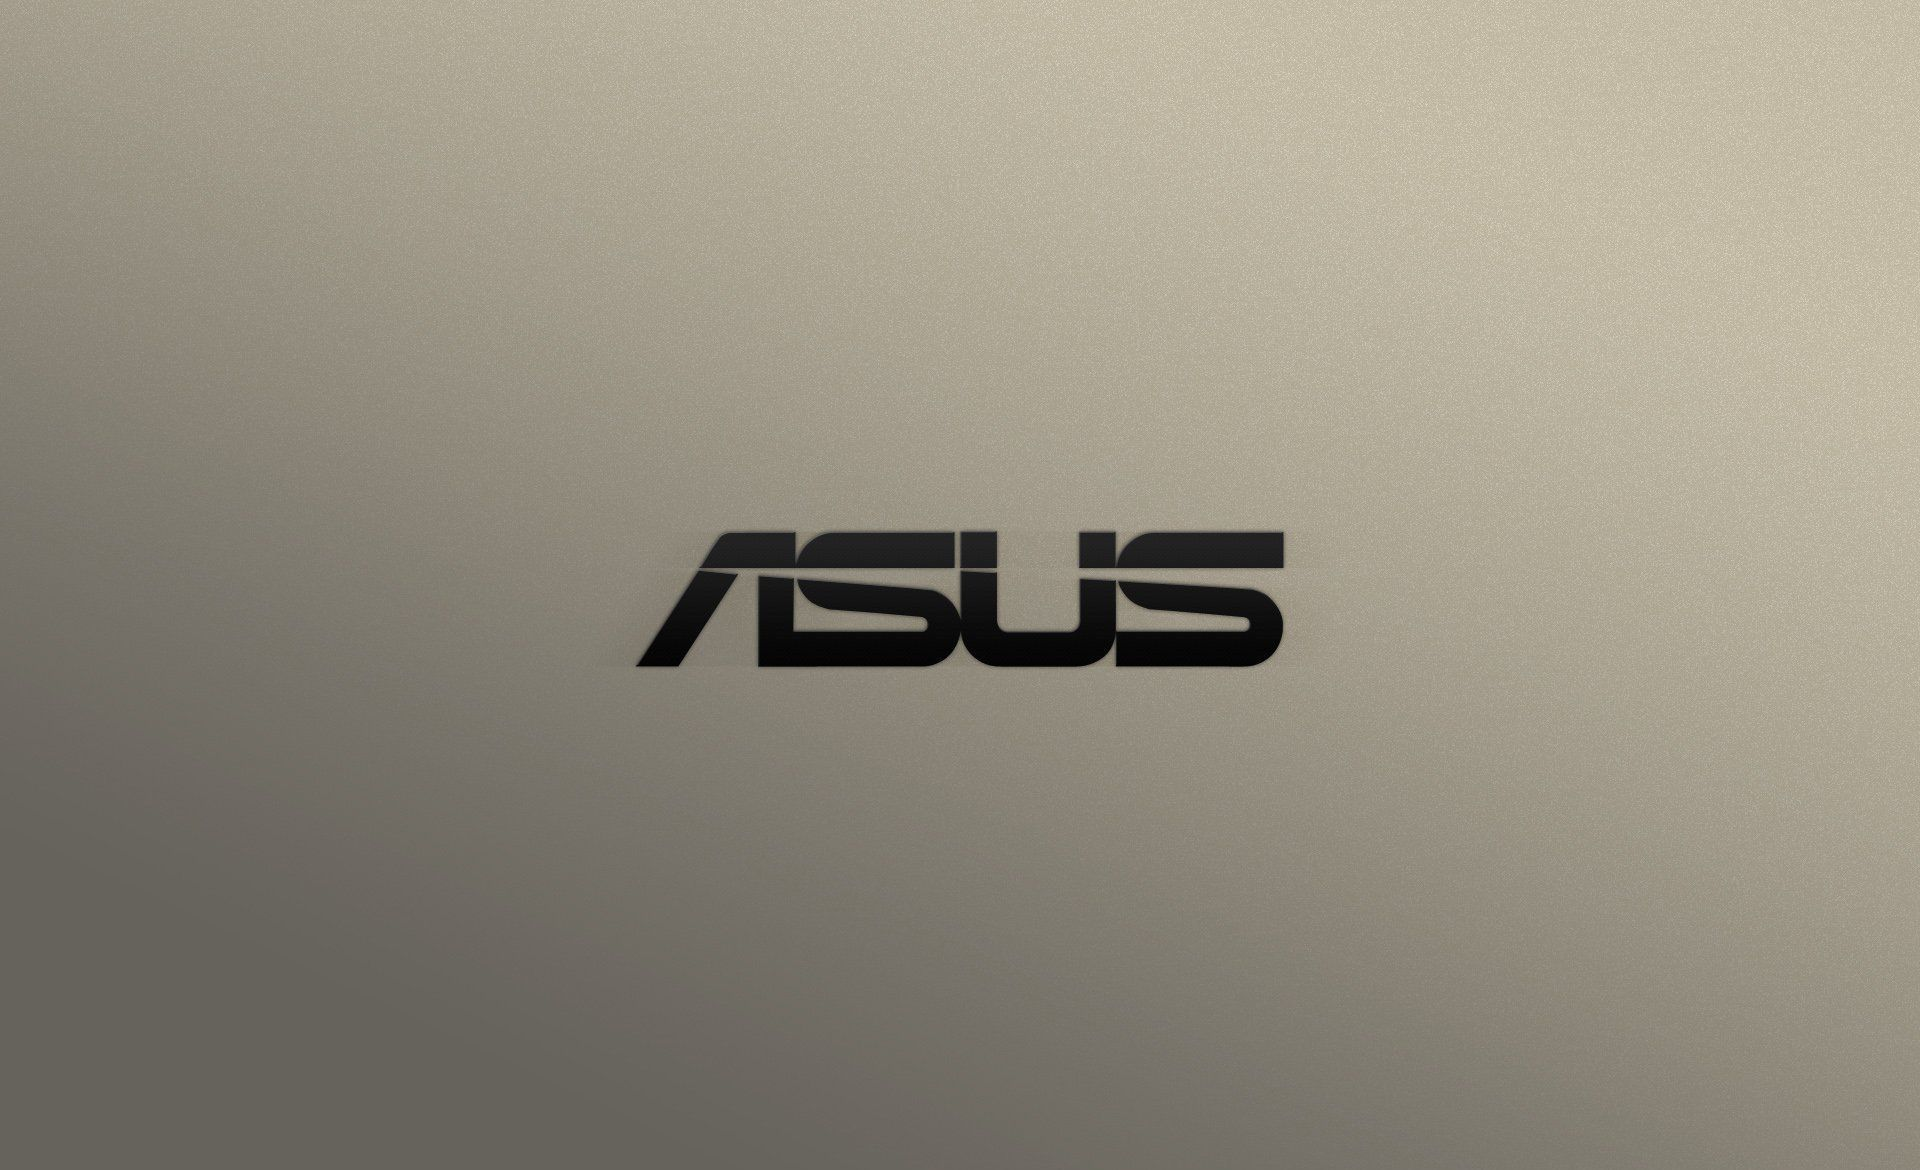 Asus For Desktop